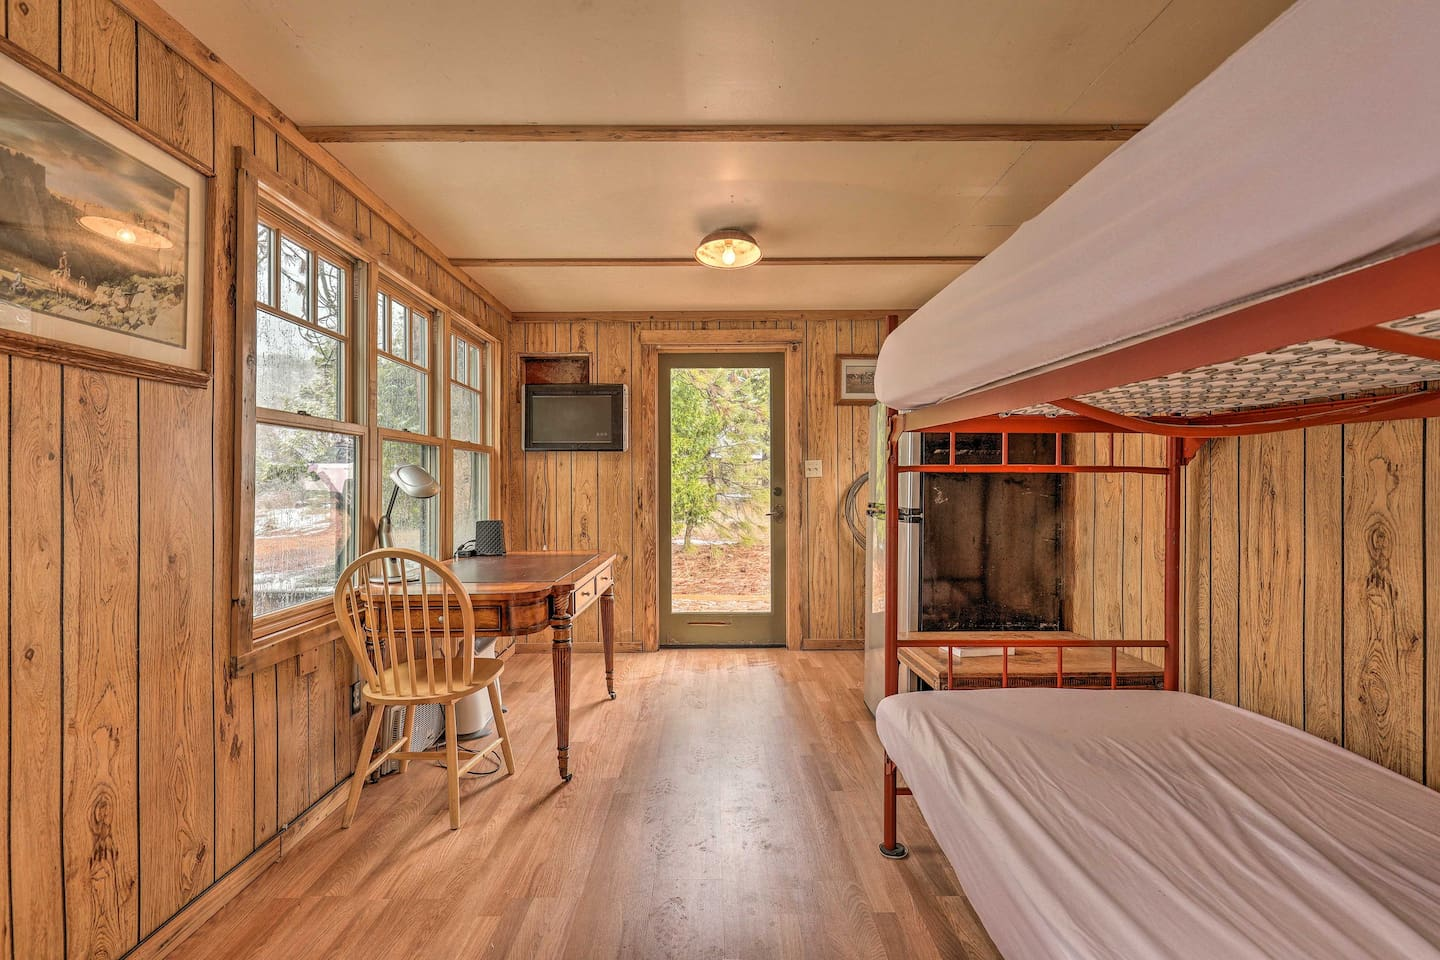 The bunkhouse features beds for 4 and a flat-screen Smart TV.